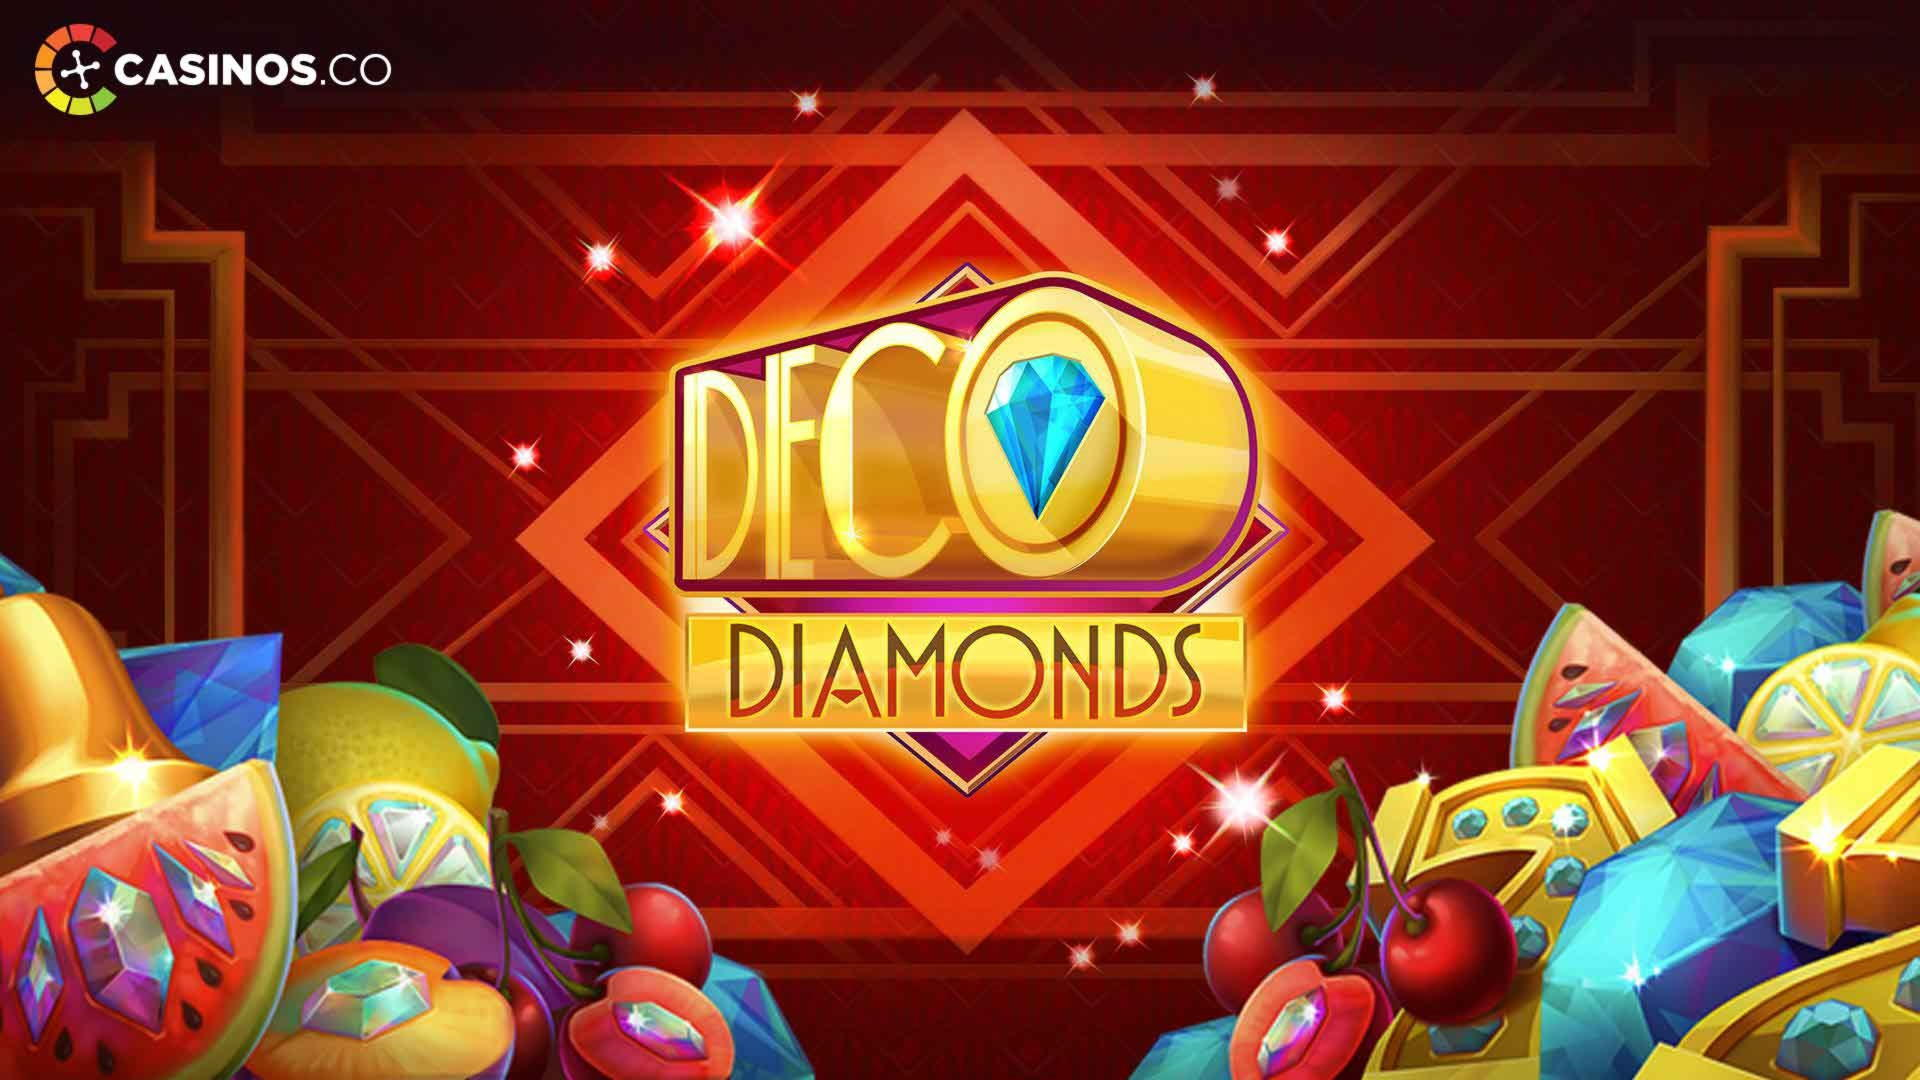 € 180 FREE Casino Chip at Party Casino